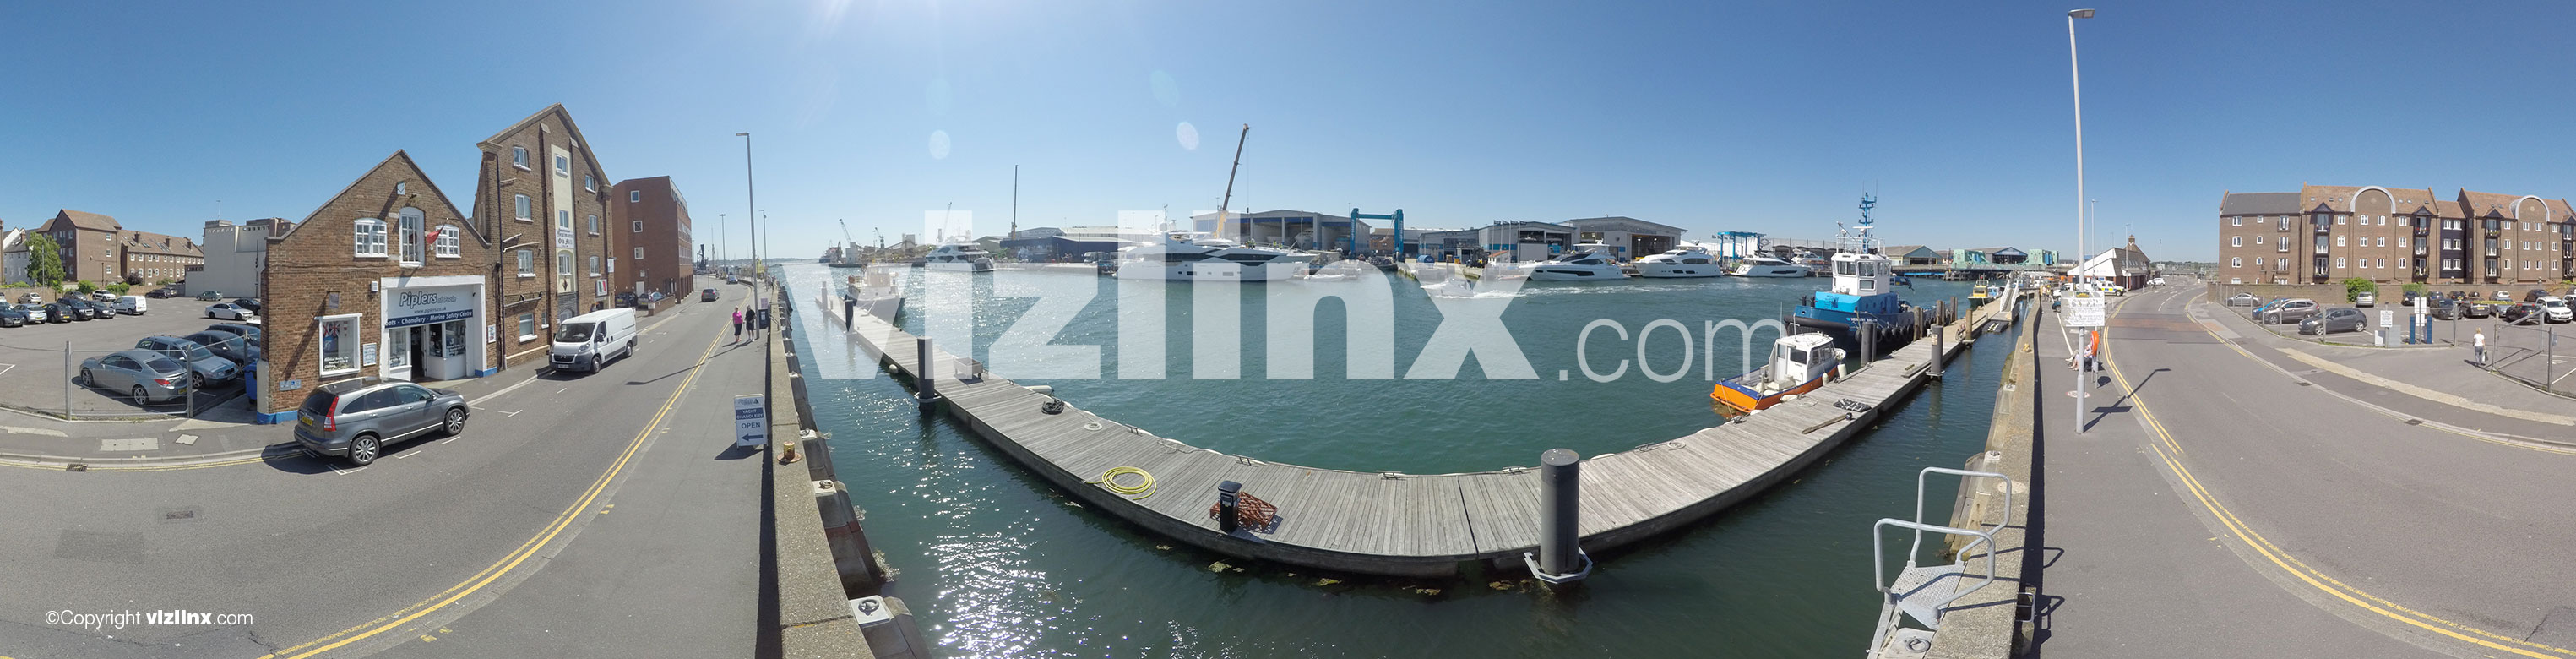 360 panorama of Poole Dorset